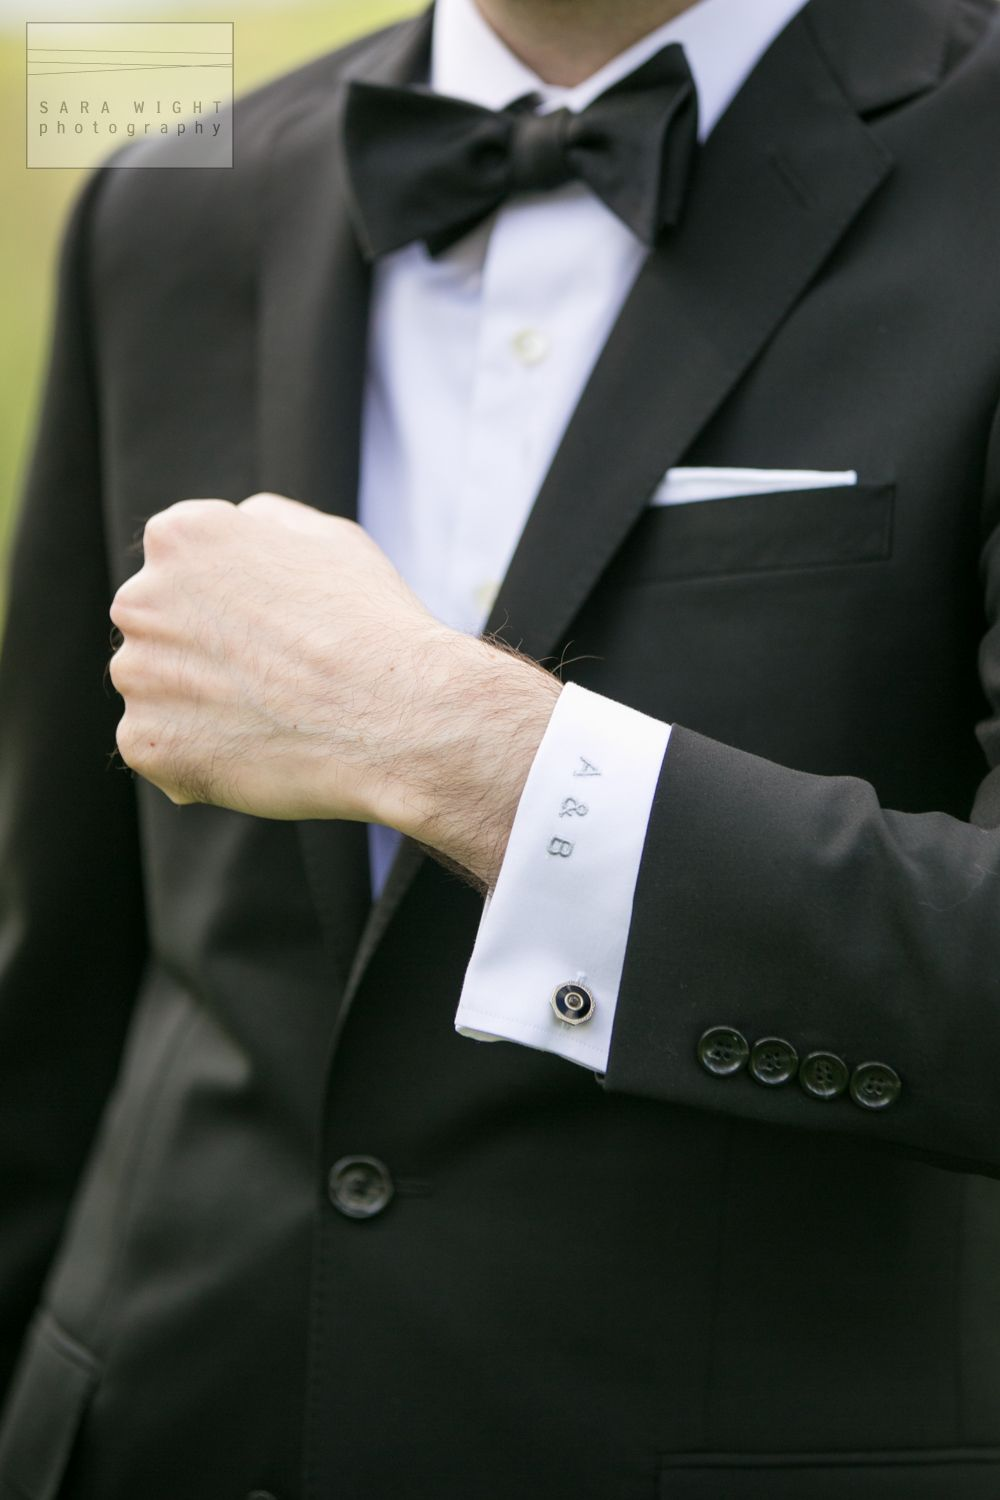 Monogrammed Initials on Groom's Shirt Cuff - Sara Wight Photography